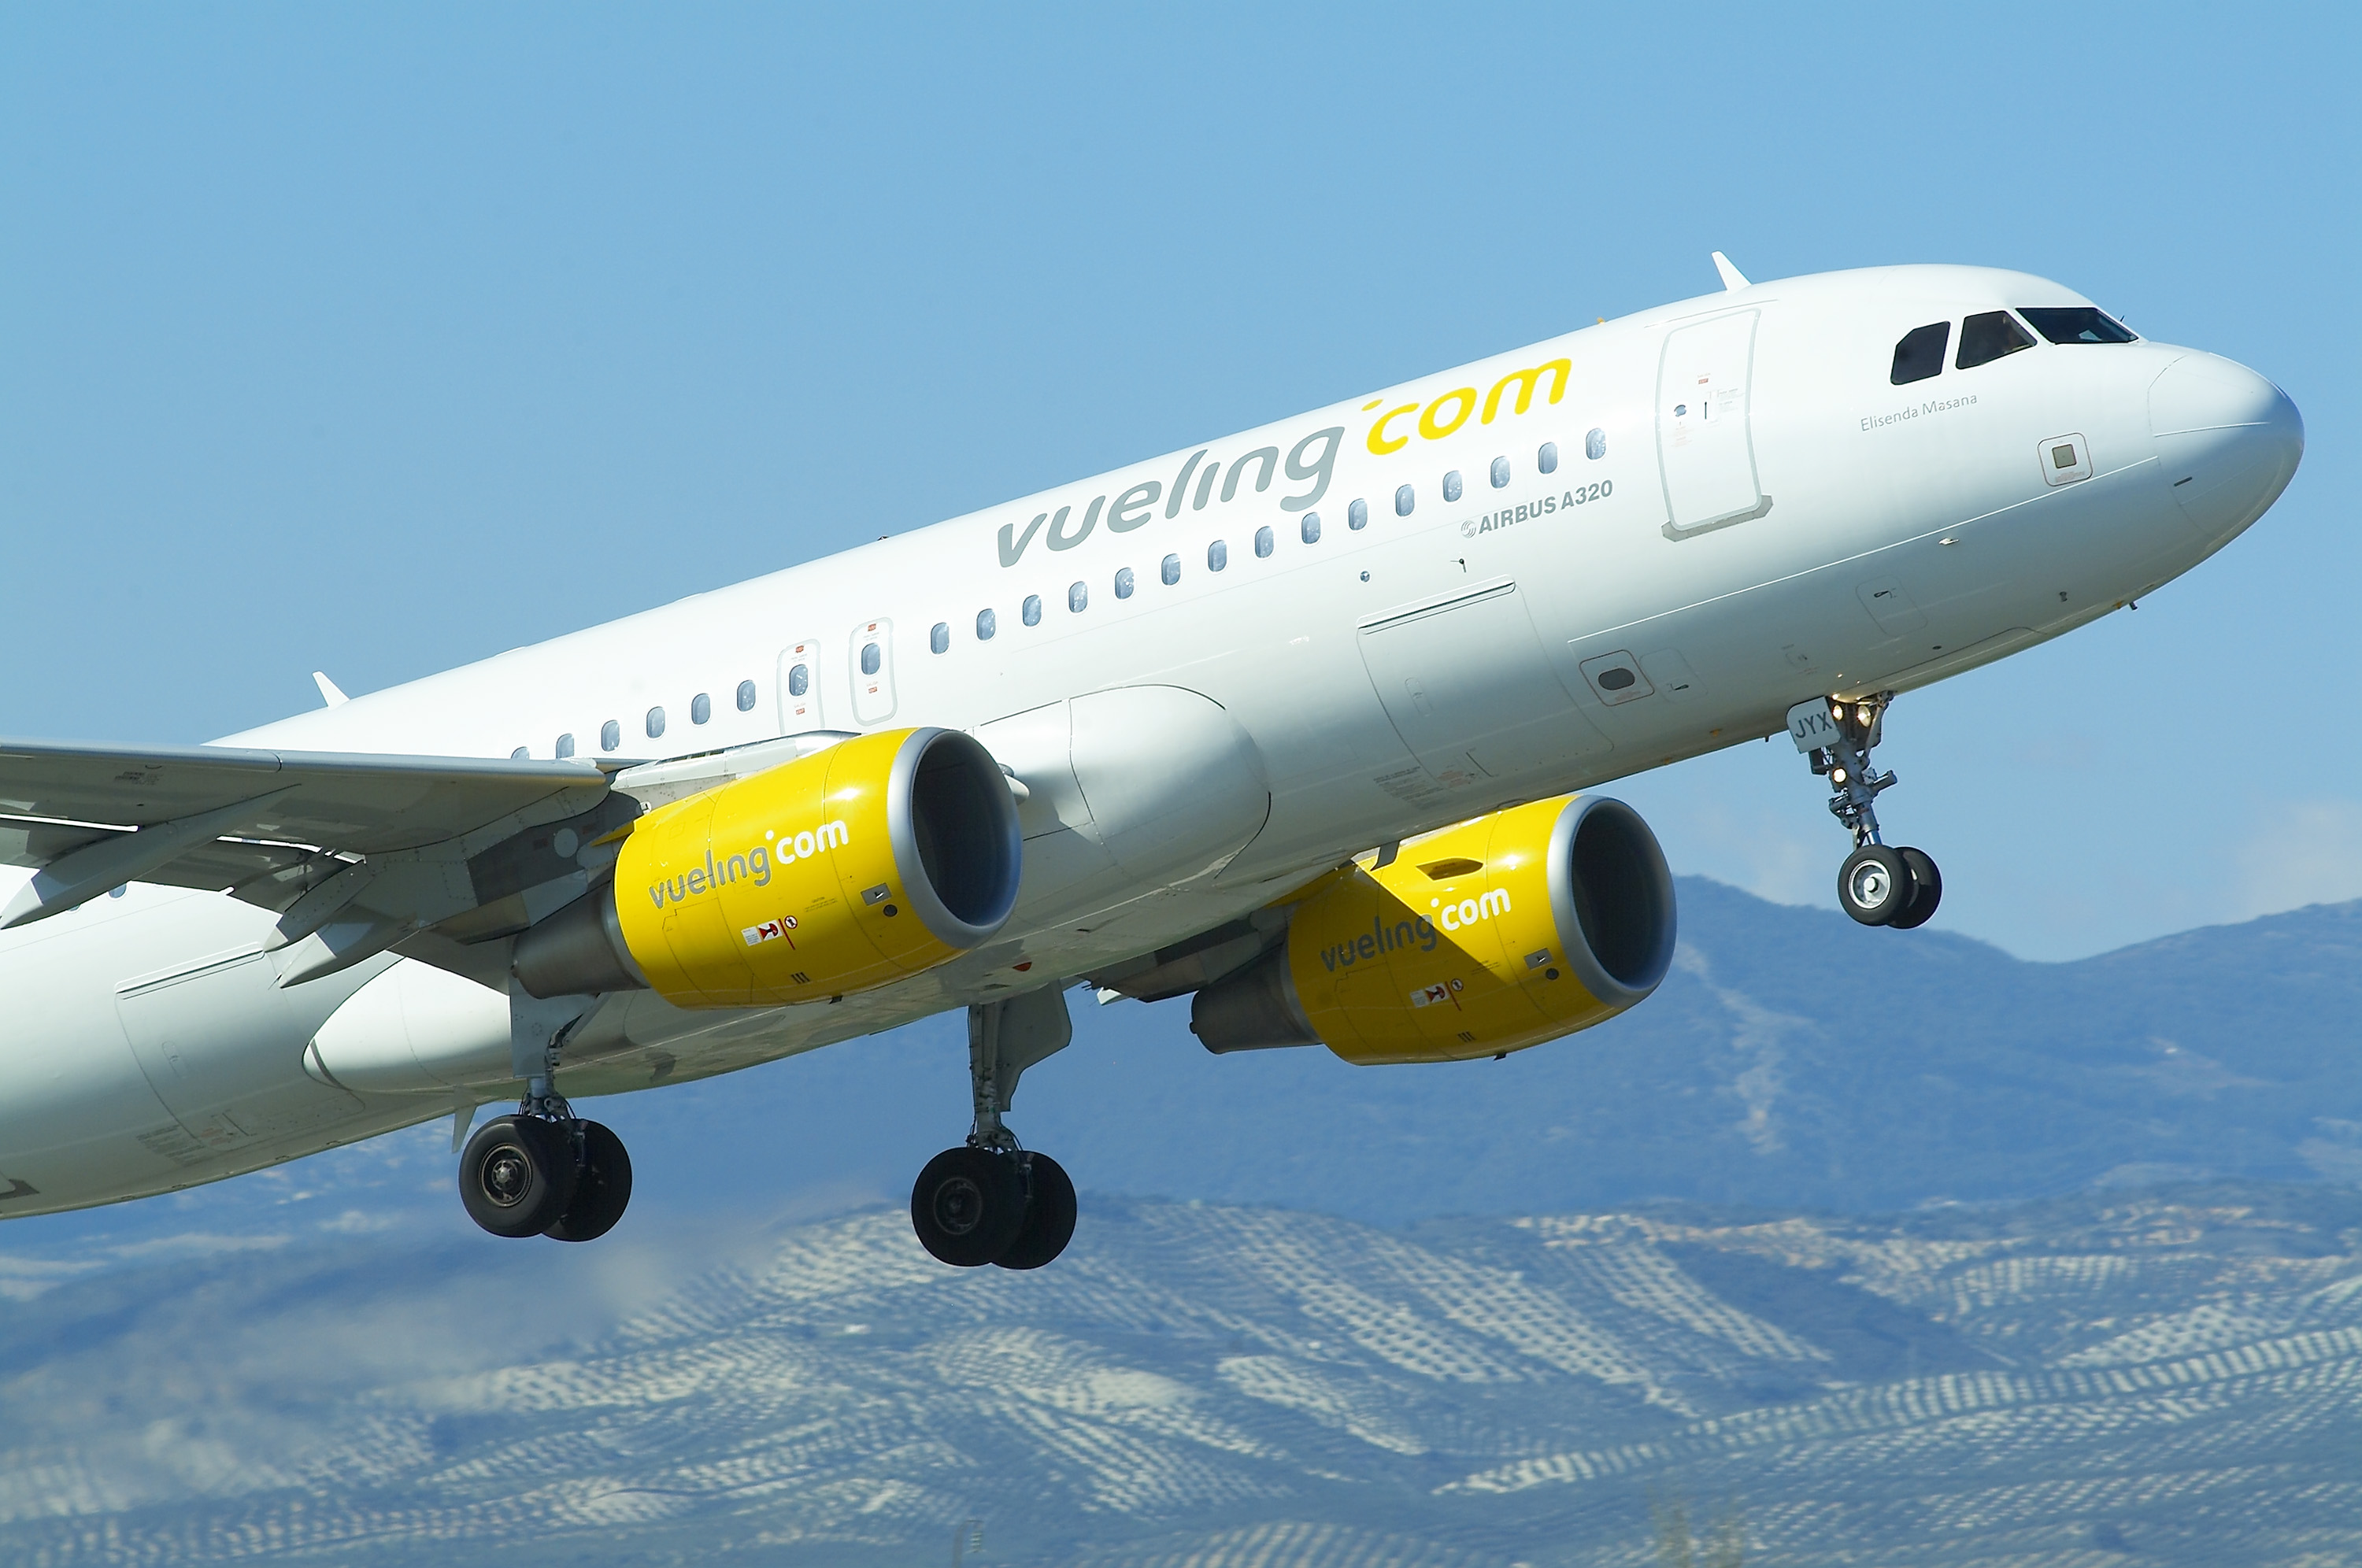 vueling services travelling business